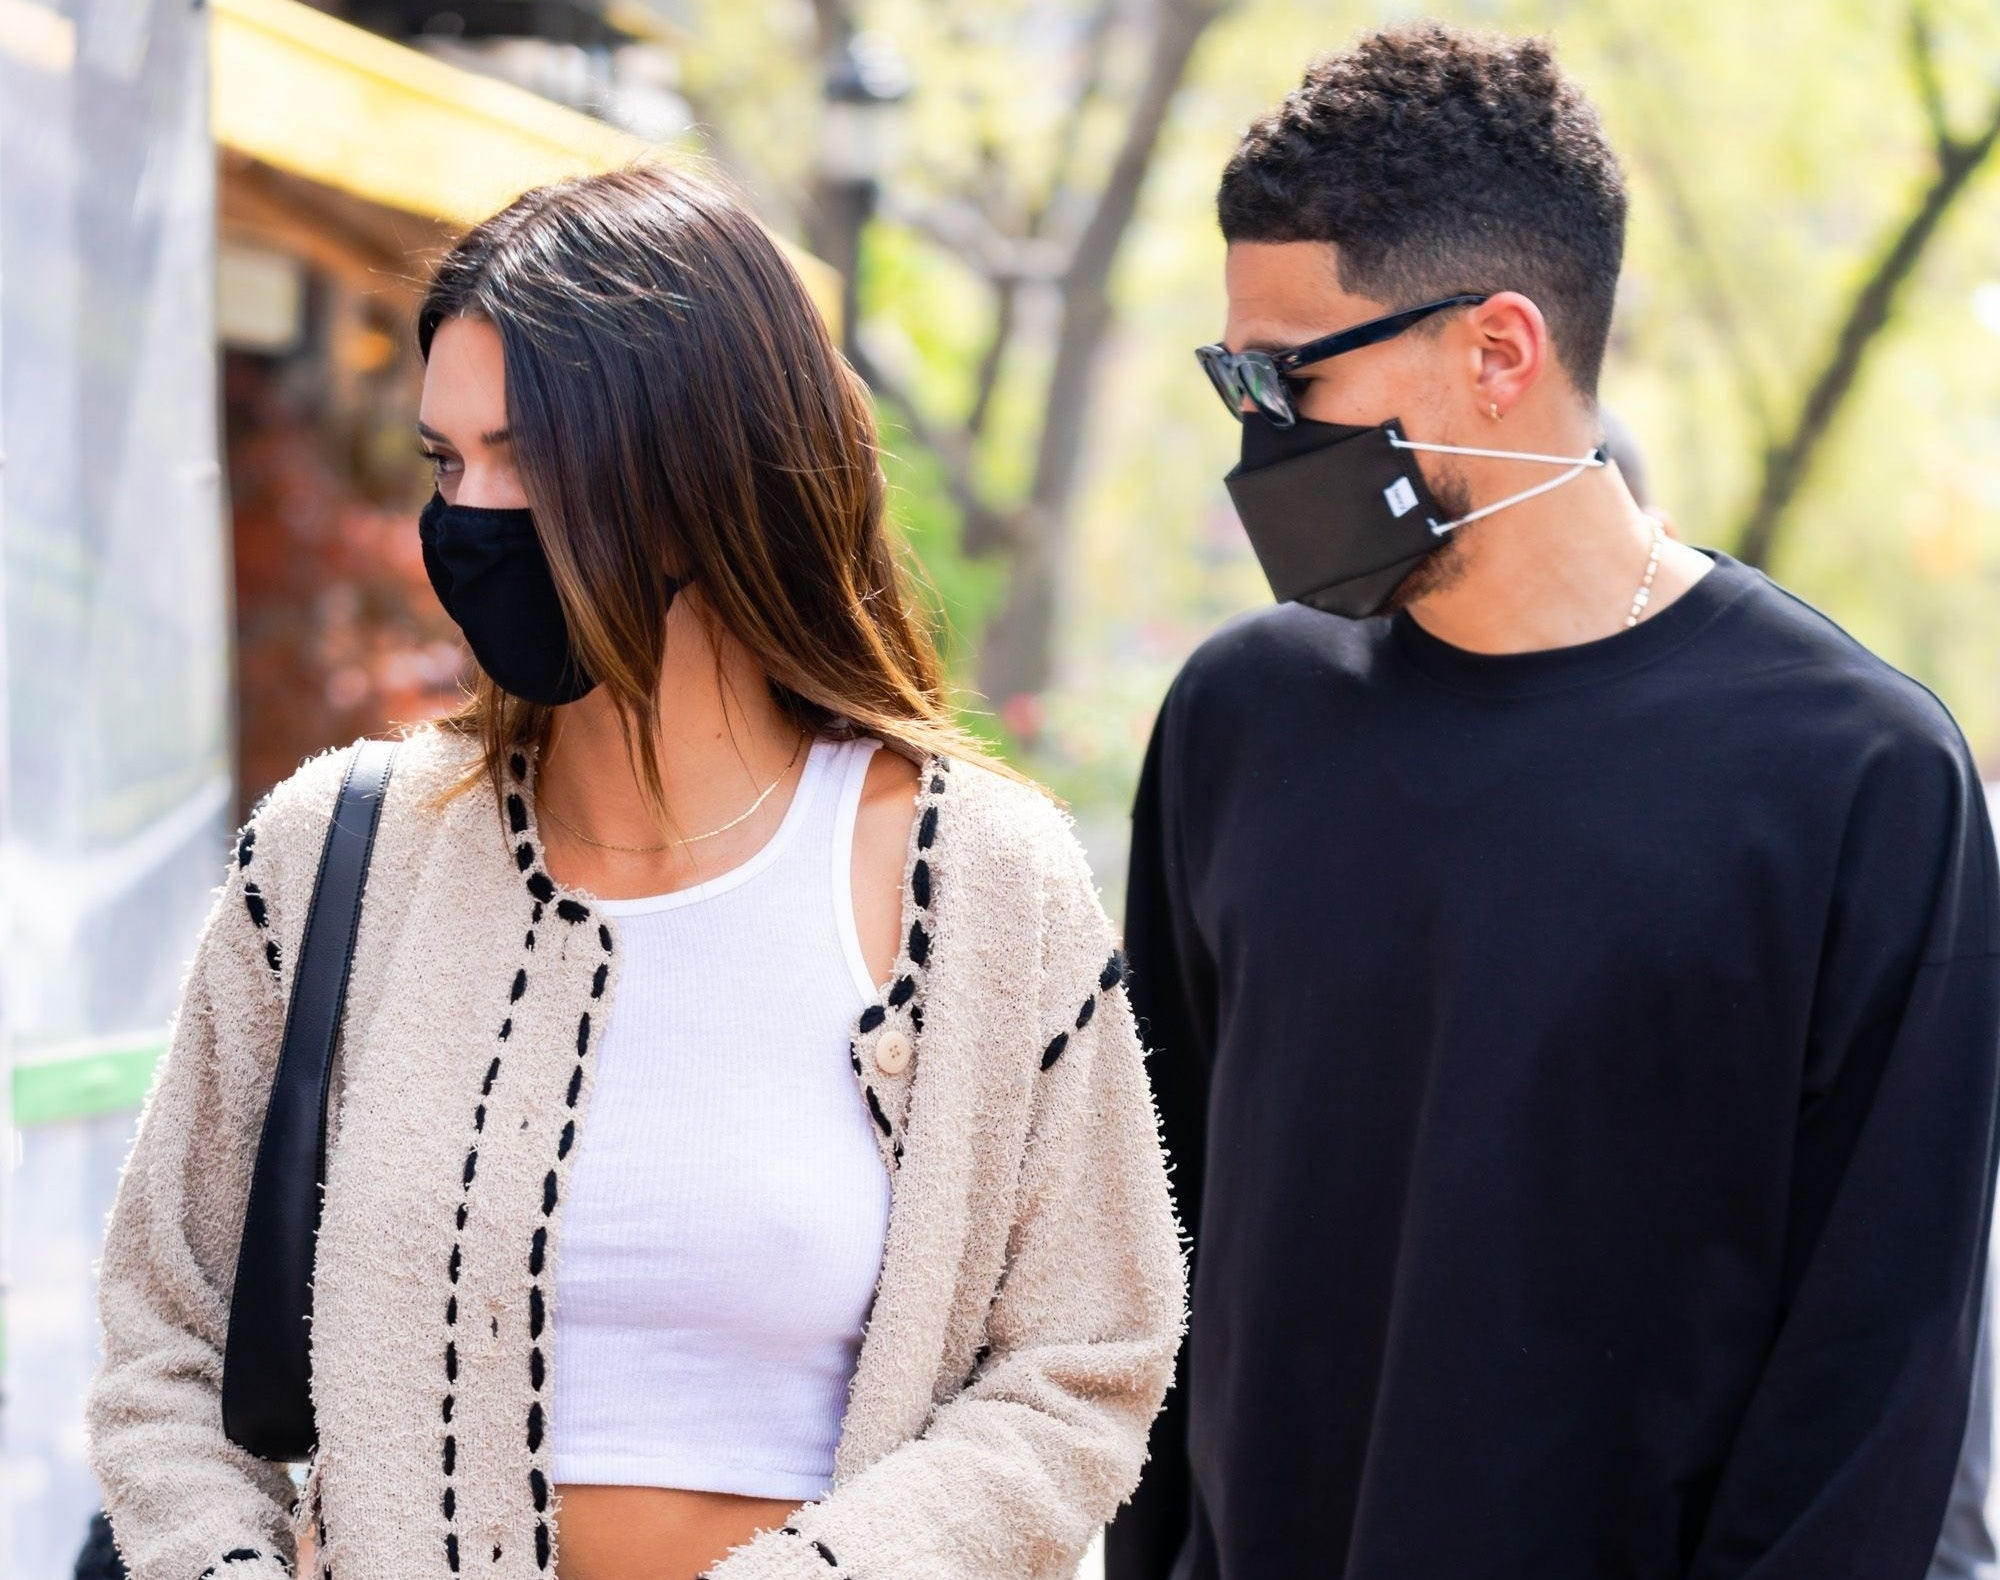 Kendall and boyfriend Devin Booker walk outside together